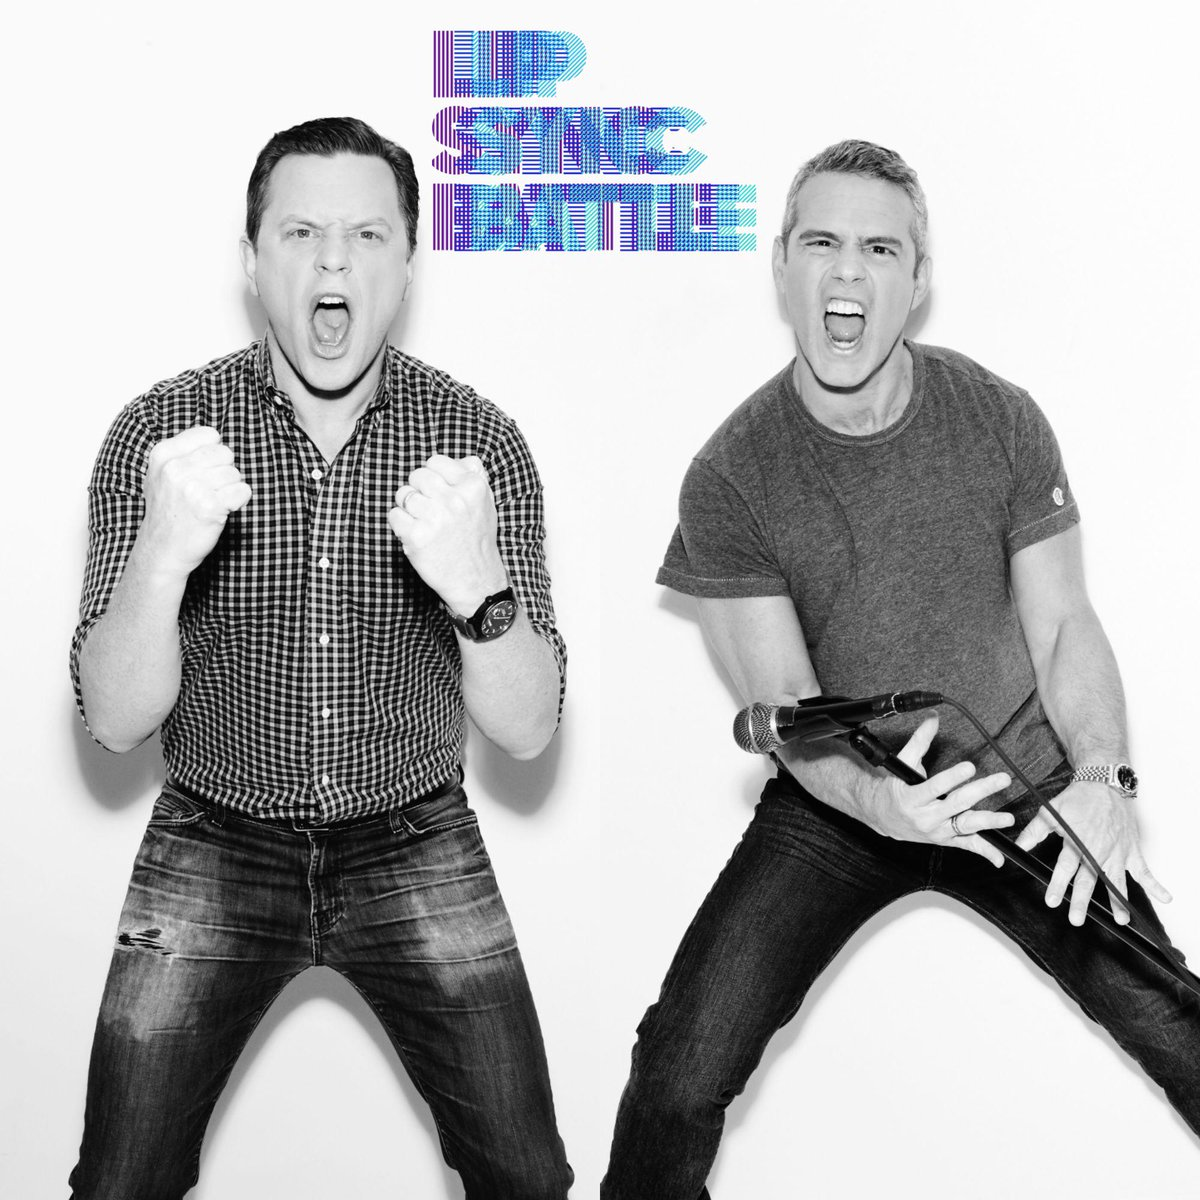 The battle is on this week. @TheTodayShow's @WillieGeist takes on @BravoWWHL's @Andy. http://t.co/o36P3MLdJI